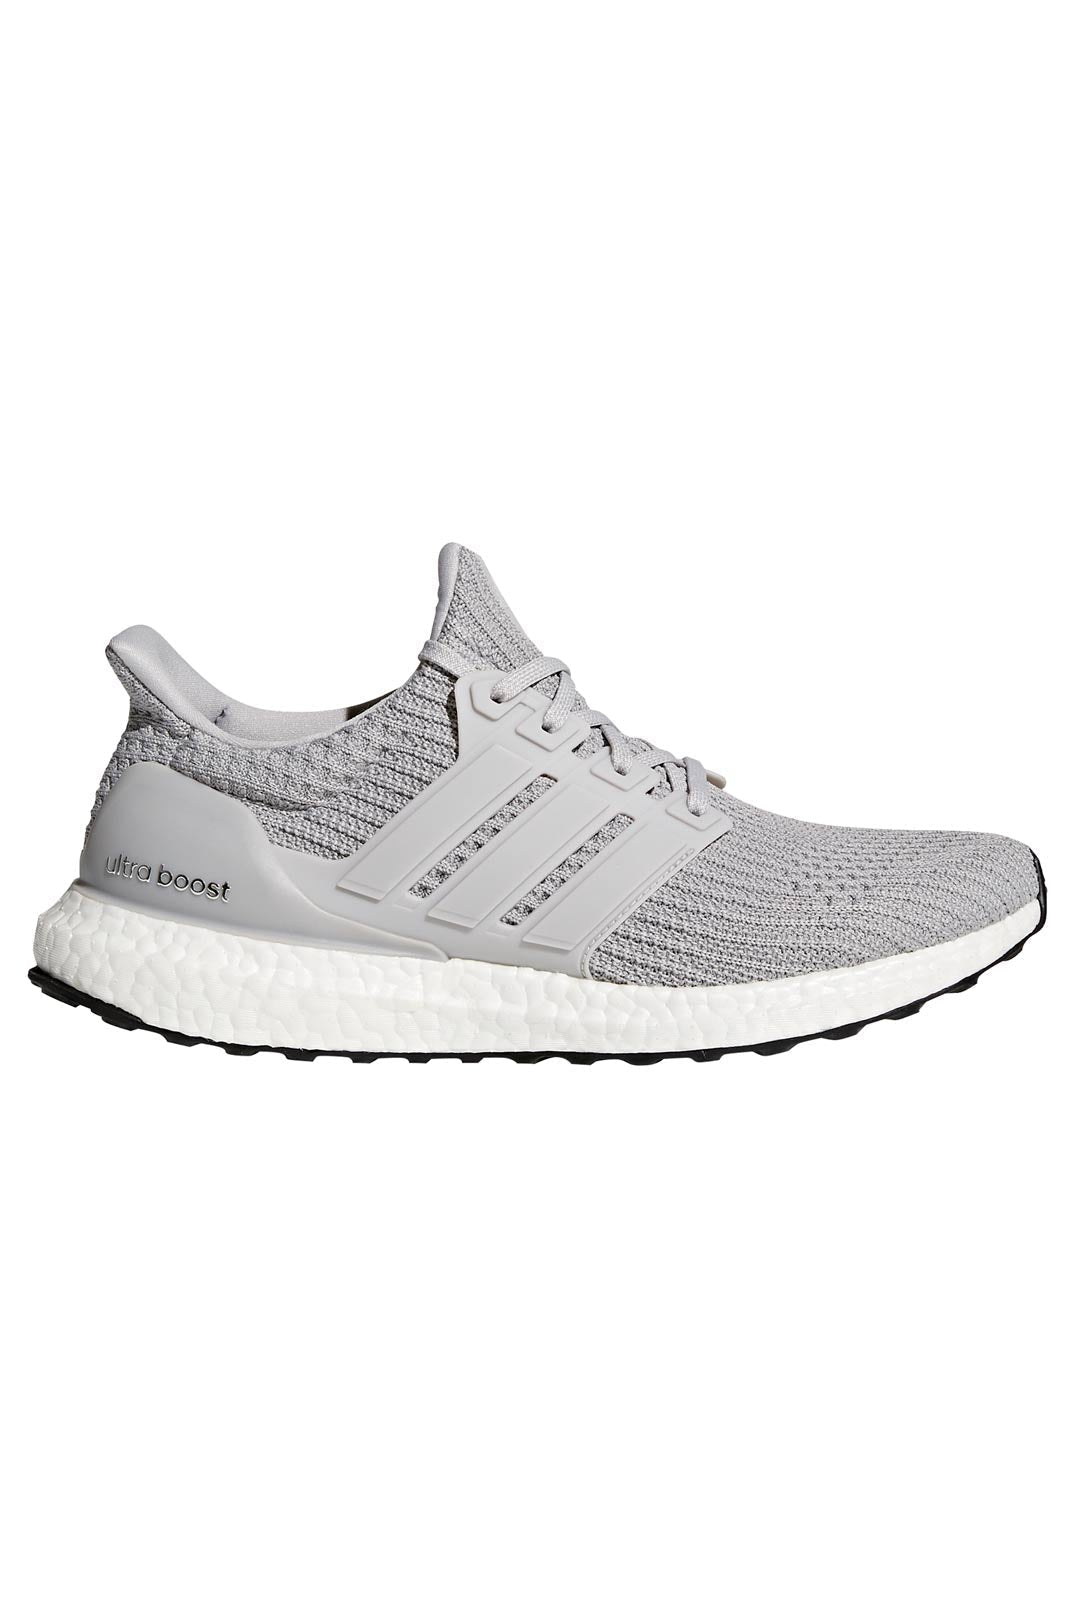 adidas ultra boost men 4.0